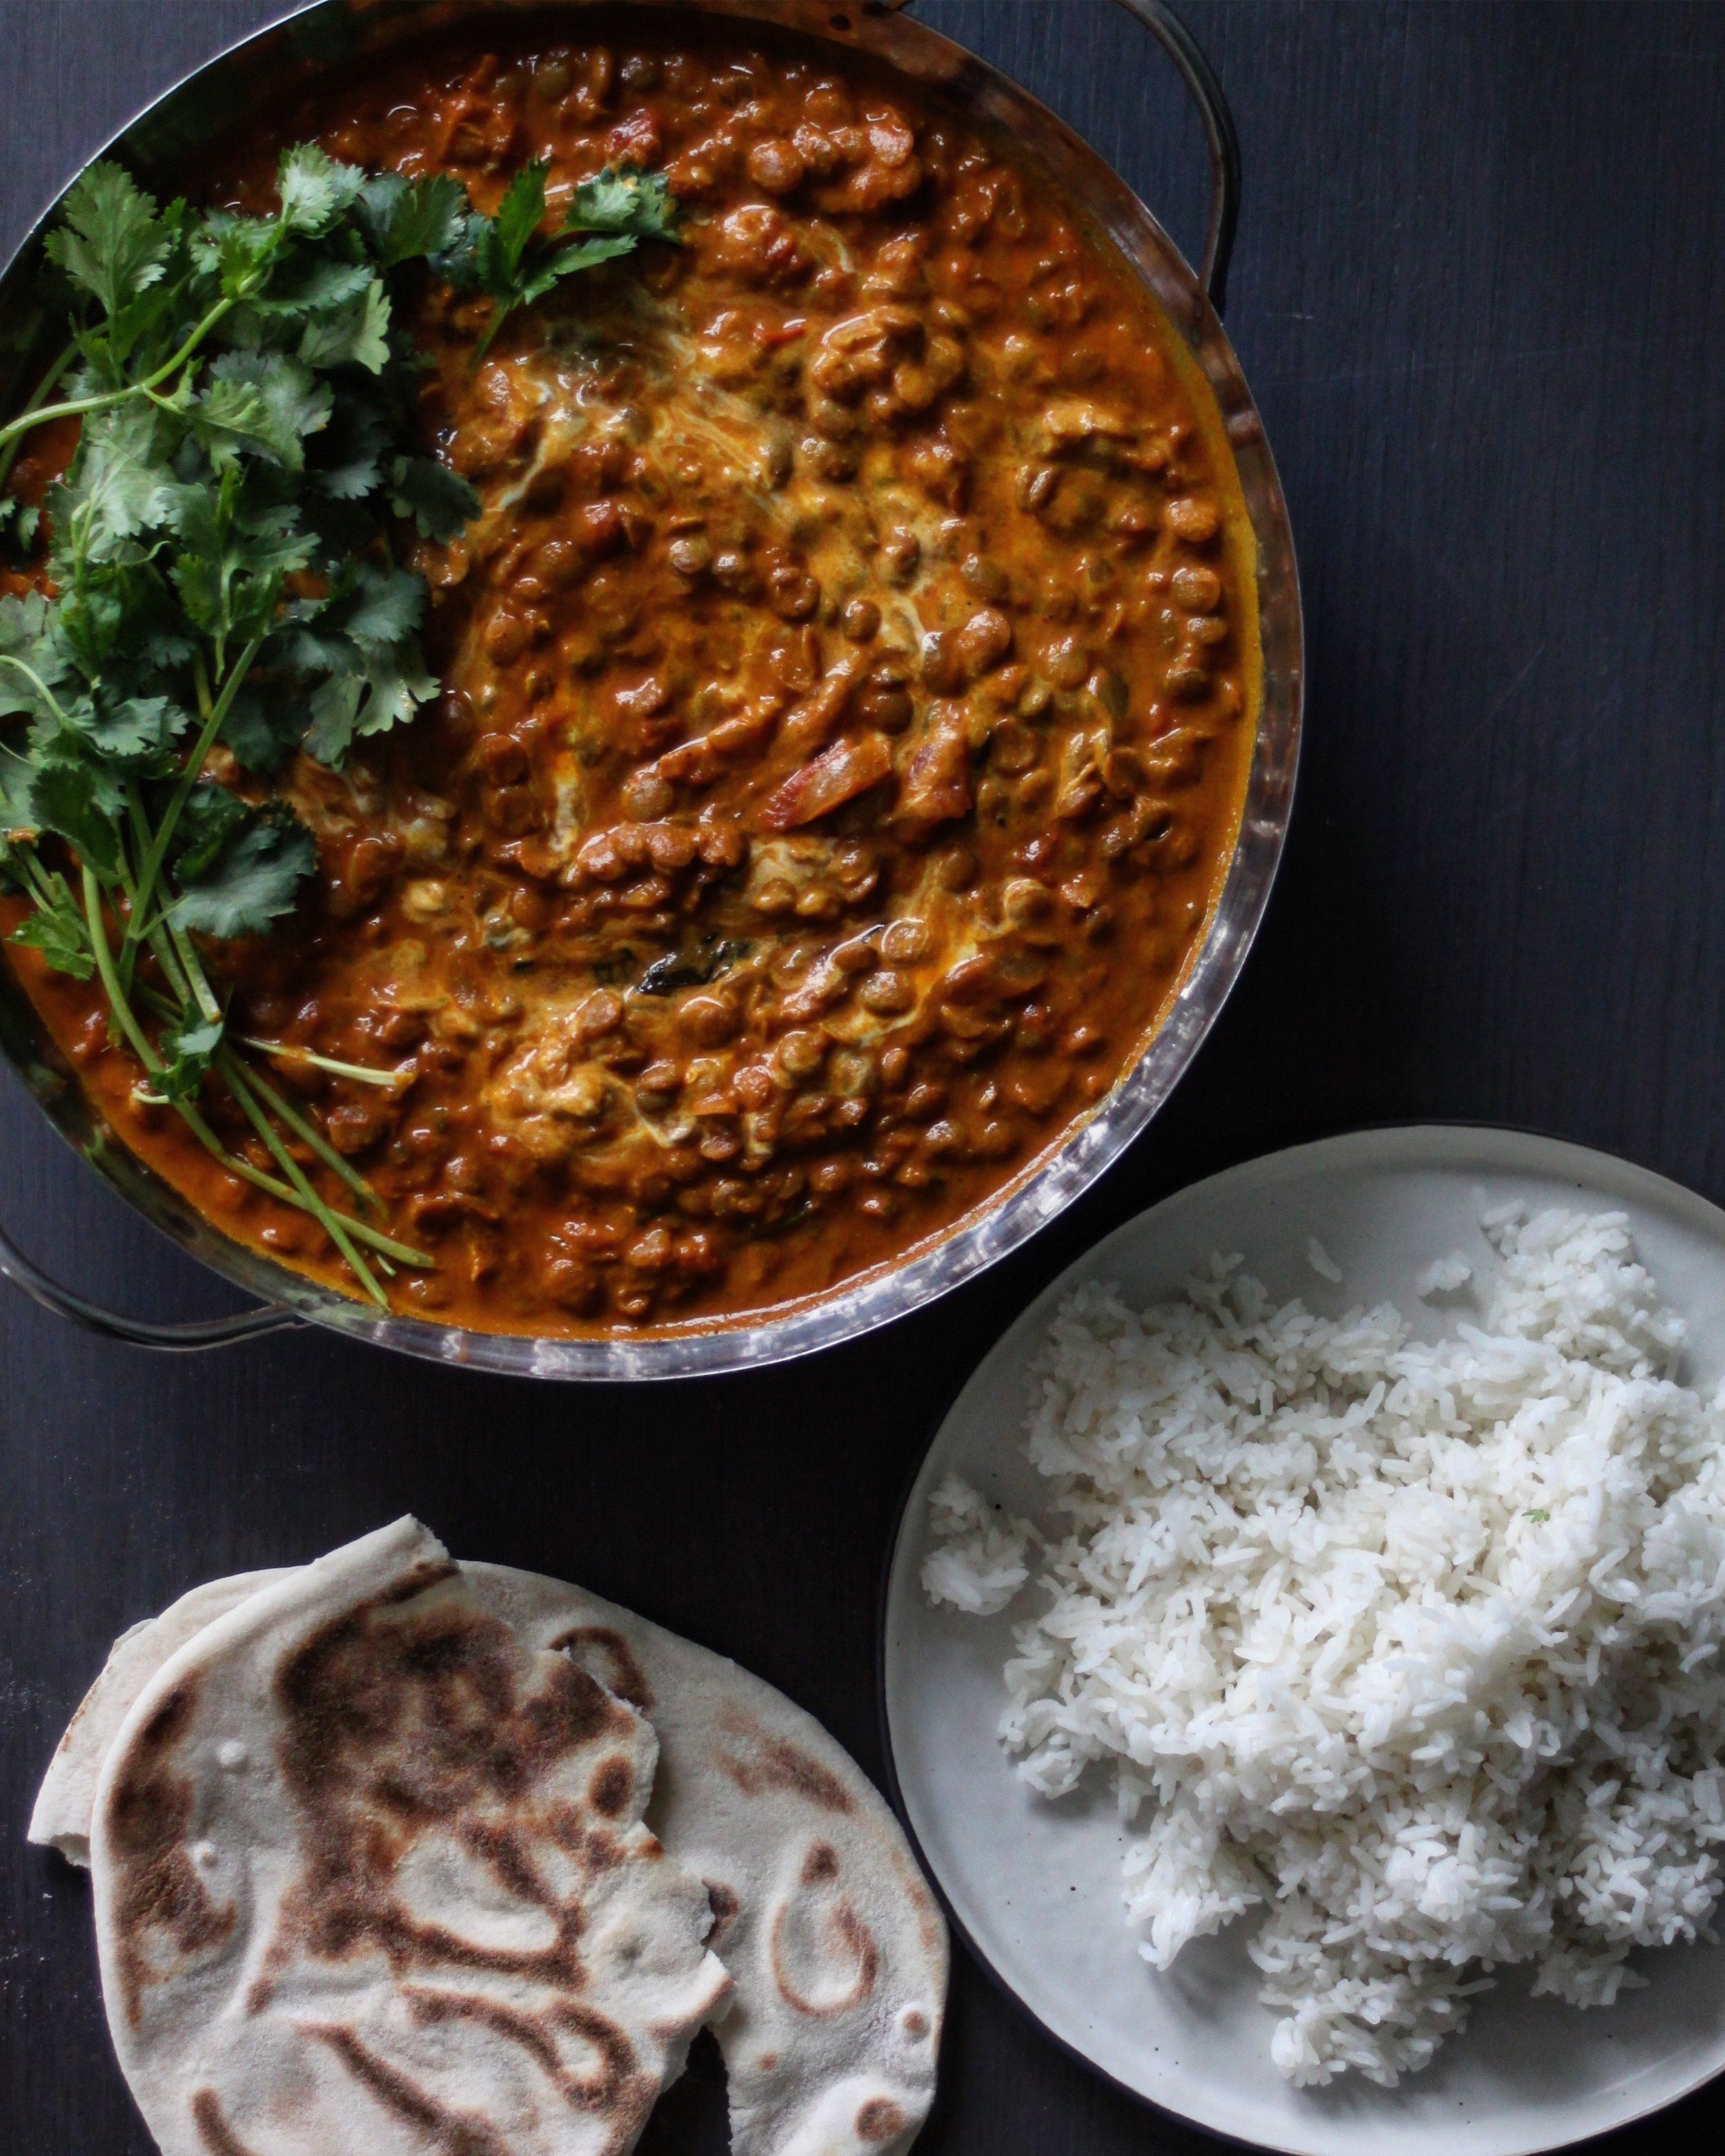 Ingredients    1 Large Onion  2 Cloves Garlic  1 Birdseye Chili  1tsp Grated Ginger (Heaped)  1tbsp Turmeric  1tsp Ground Cumin (Heaped)  1tsp Paprika (Heaped)  2tsp Garam Masala  2 400g Tins Chopped Tomatoes  400g Tin Coconut Milk  1 Cup Green Lentils  2tsp Tomato Puree  50g Fresh Spinach    Method    Chop the onion finely and place into a large frying pan/saucepan with a drizzle of vegetable oil and a pinch of salt and pepper. Cook on a medium heat for a minute or two until soft. Chop the chili finely, crush the garlic, grate the ginger and add them all to the softened onions. Cook for another 5 minutes.  Next add the spices to the pan. Stir to combine and allow the spices to cook for a minute until the aromas begin to fill the kitchen. Now add the tomatoes - fill the two empty tins with water and add these to the pan too along with the tomato puree. Stir all the ingredients to combine.  Now add the lentils and coconut milk. Bring the mix to a boil and reduce to a simmer for 45 minutes or until the lentils are soft and cooked through. Finish the curry with the spinach five minutes before it is ready to serve, just so that the leaves begin to wilt.  Serve the curry with steamed rice, flatbreads and a swirl of natural yogurt.